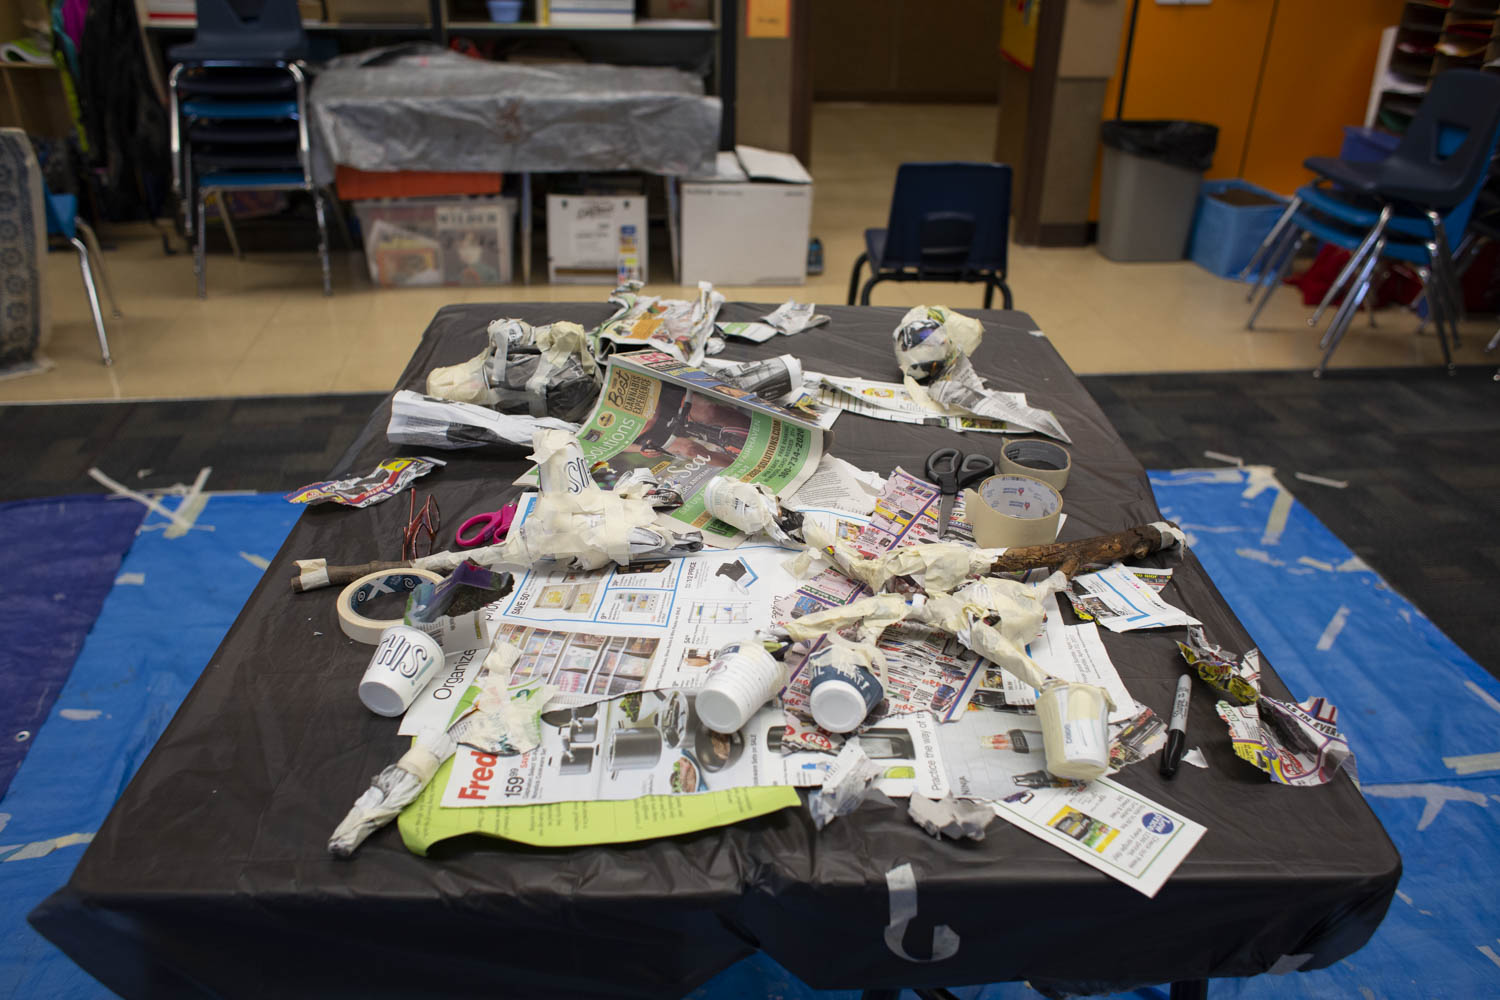 Paper mache puppet making with third graders.